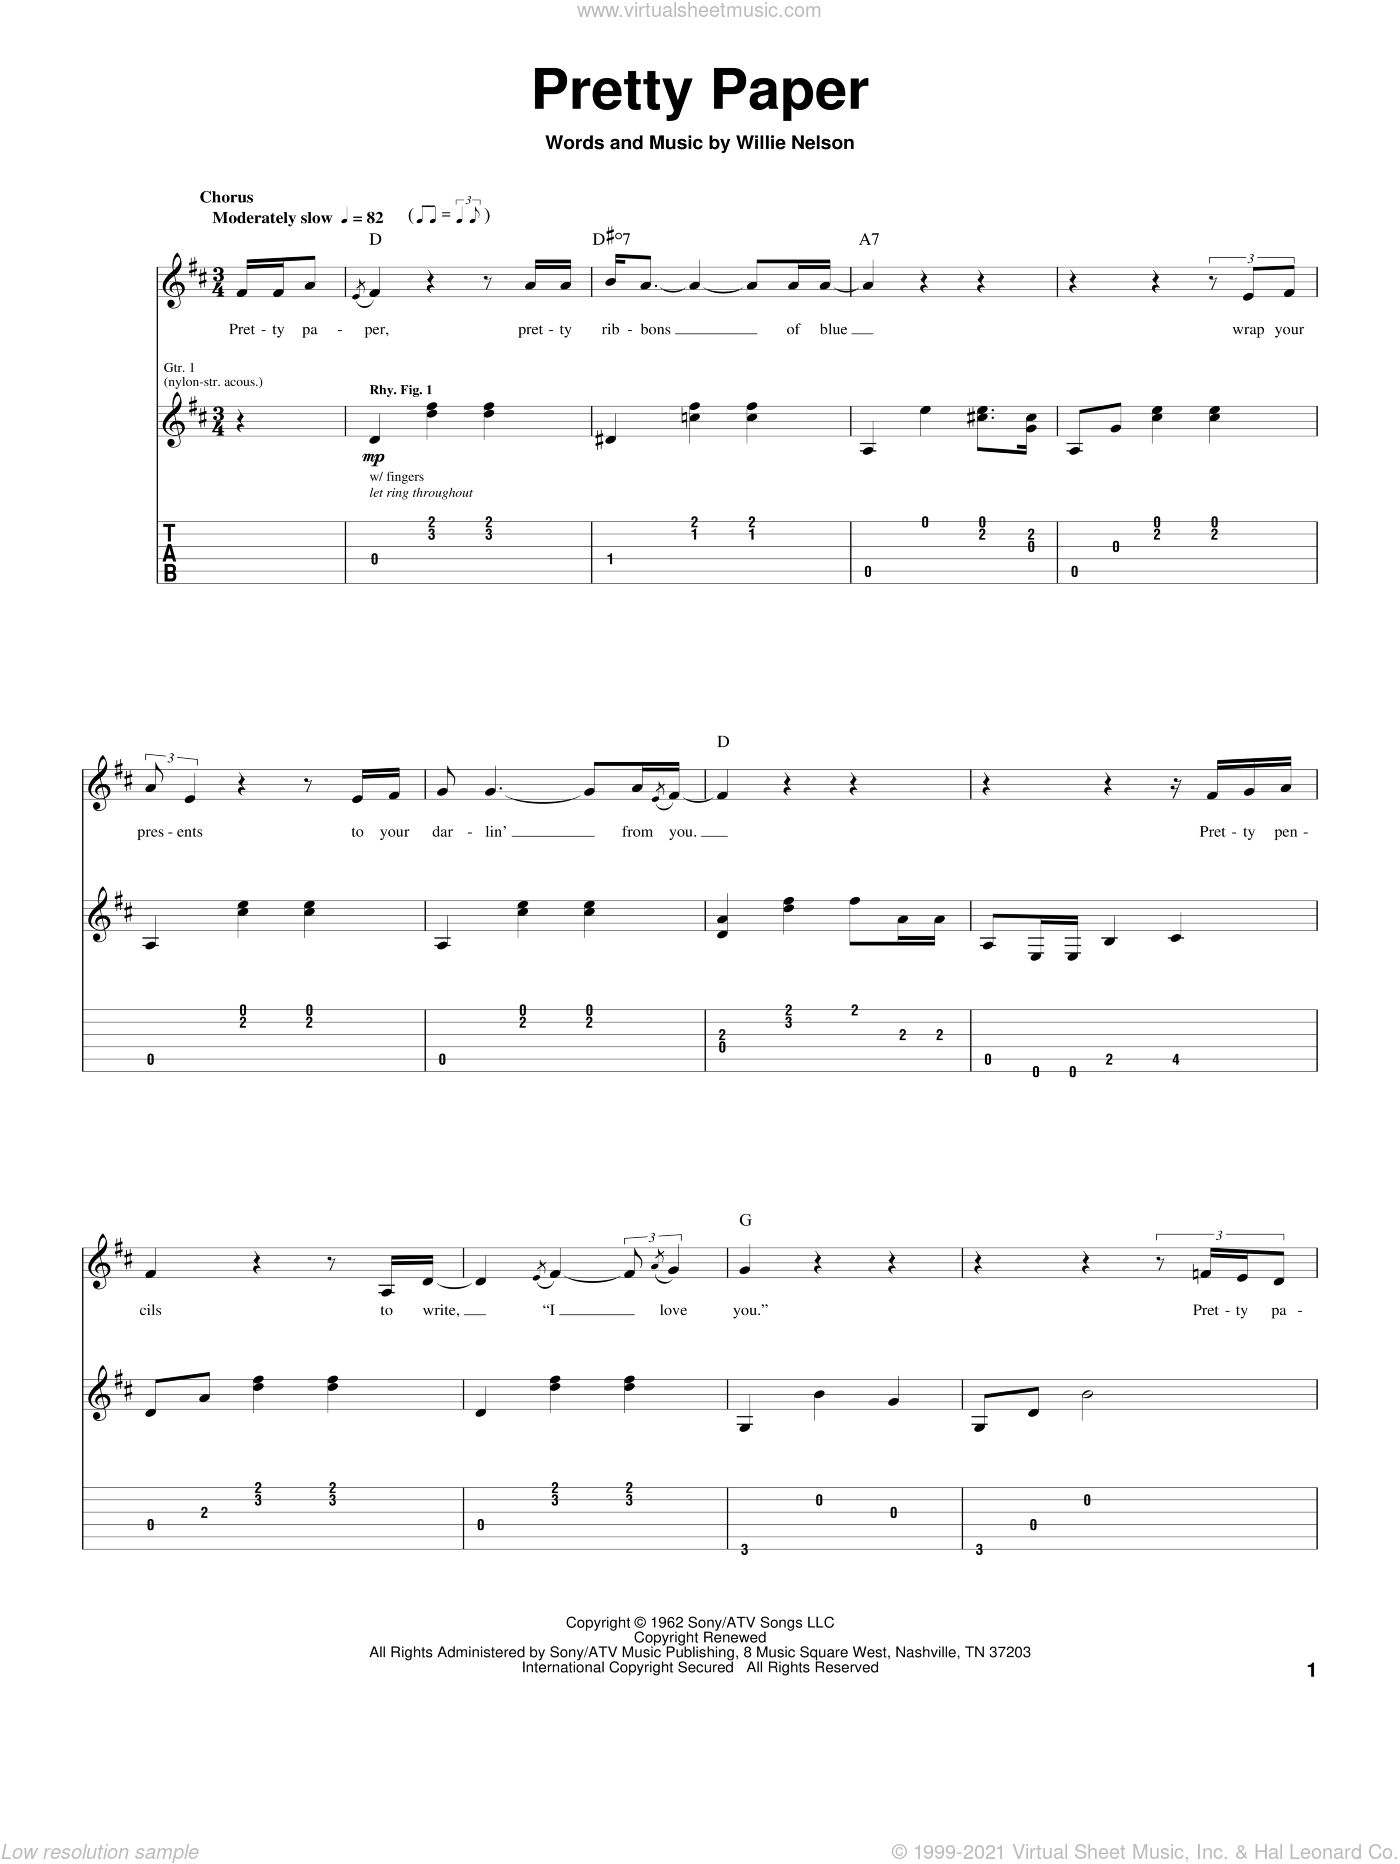 Nelson - Pretty Paper sheet music for guitar (tablature)